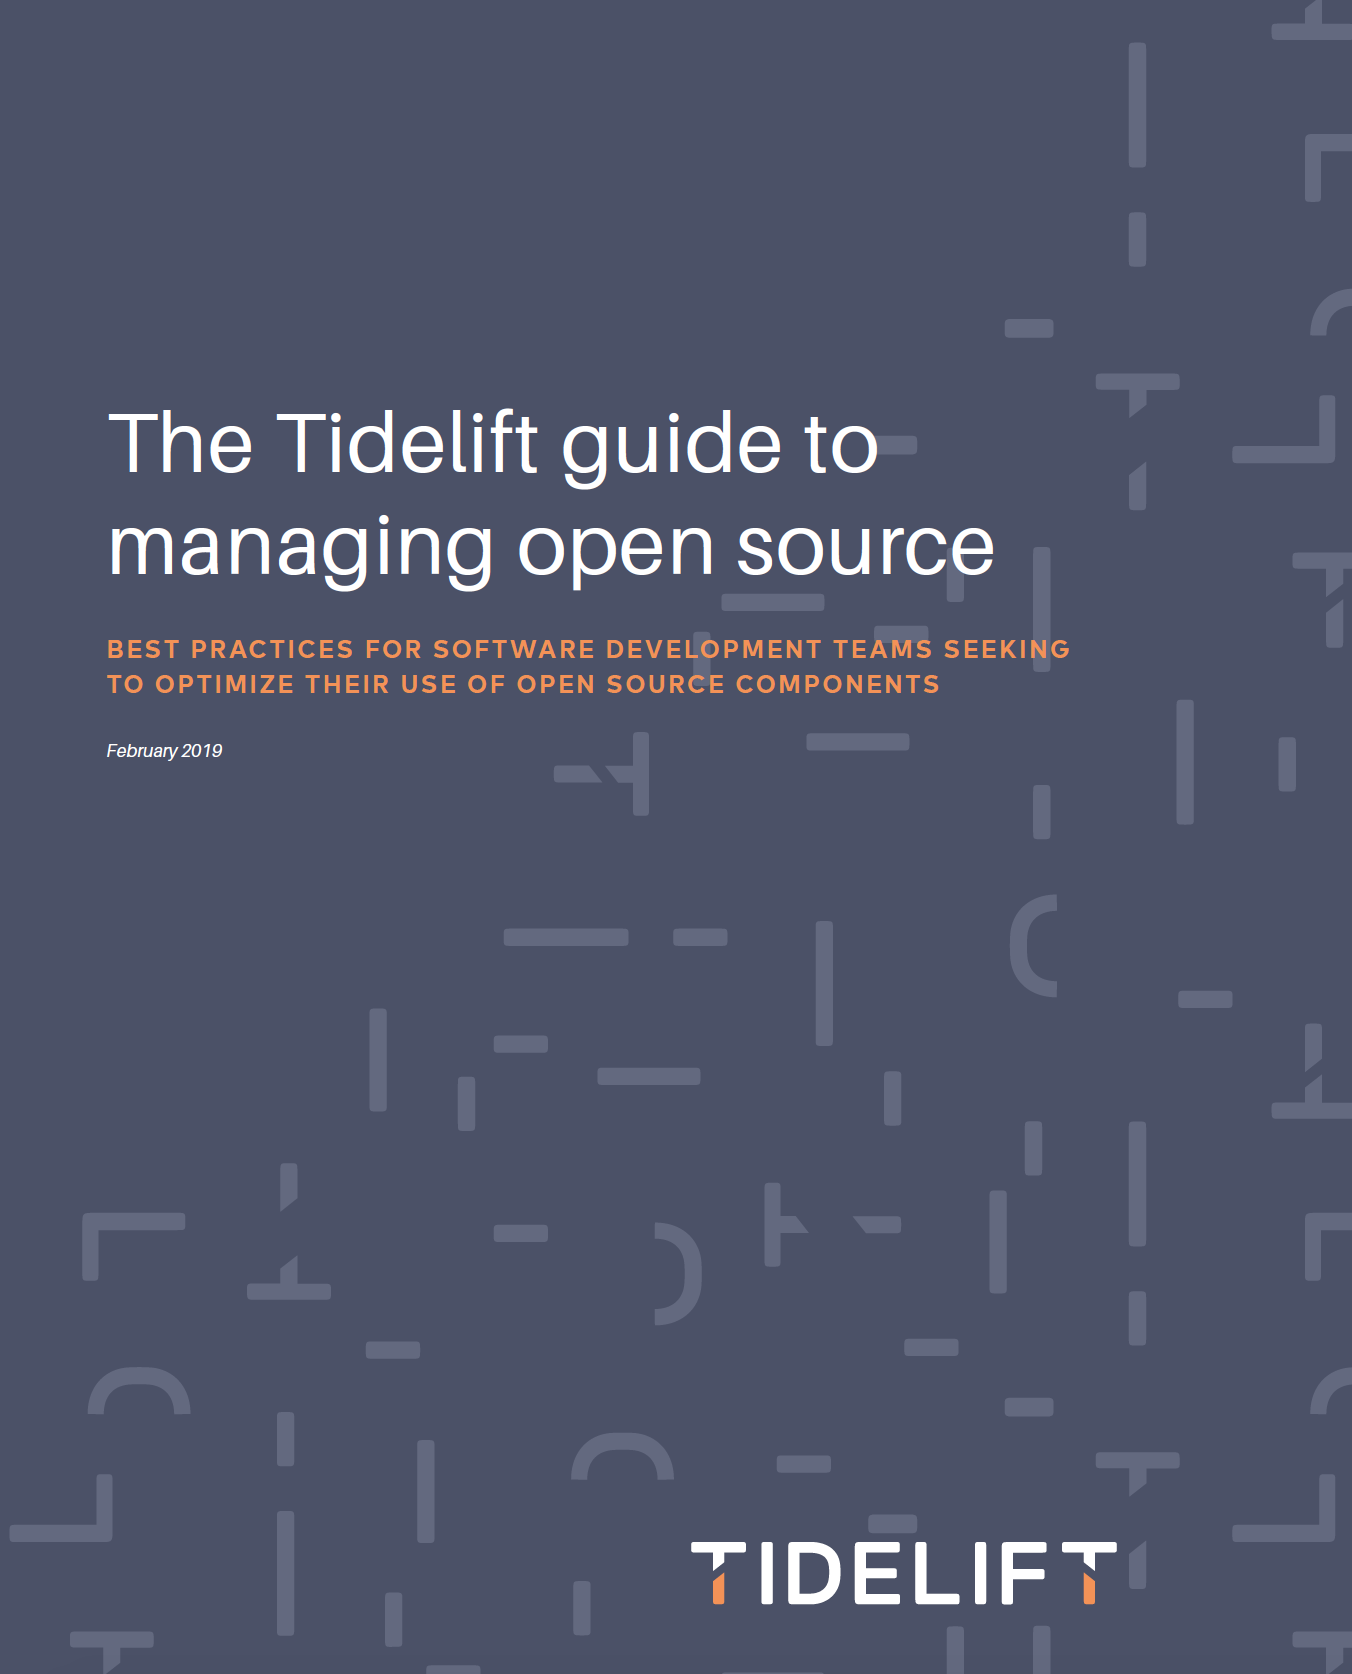 The Tidelift guide to managing open source